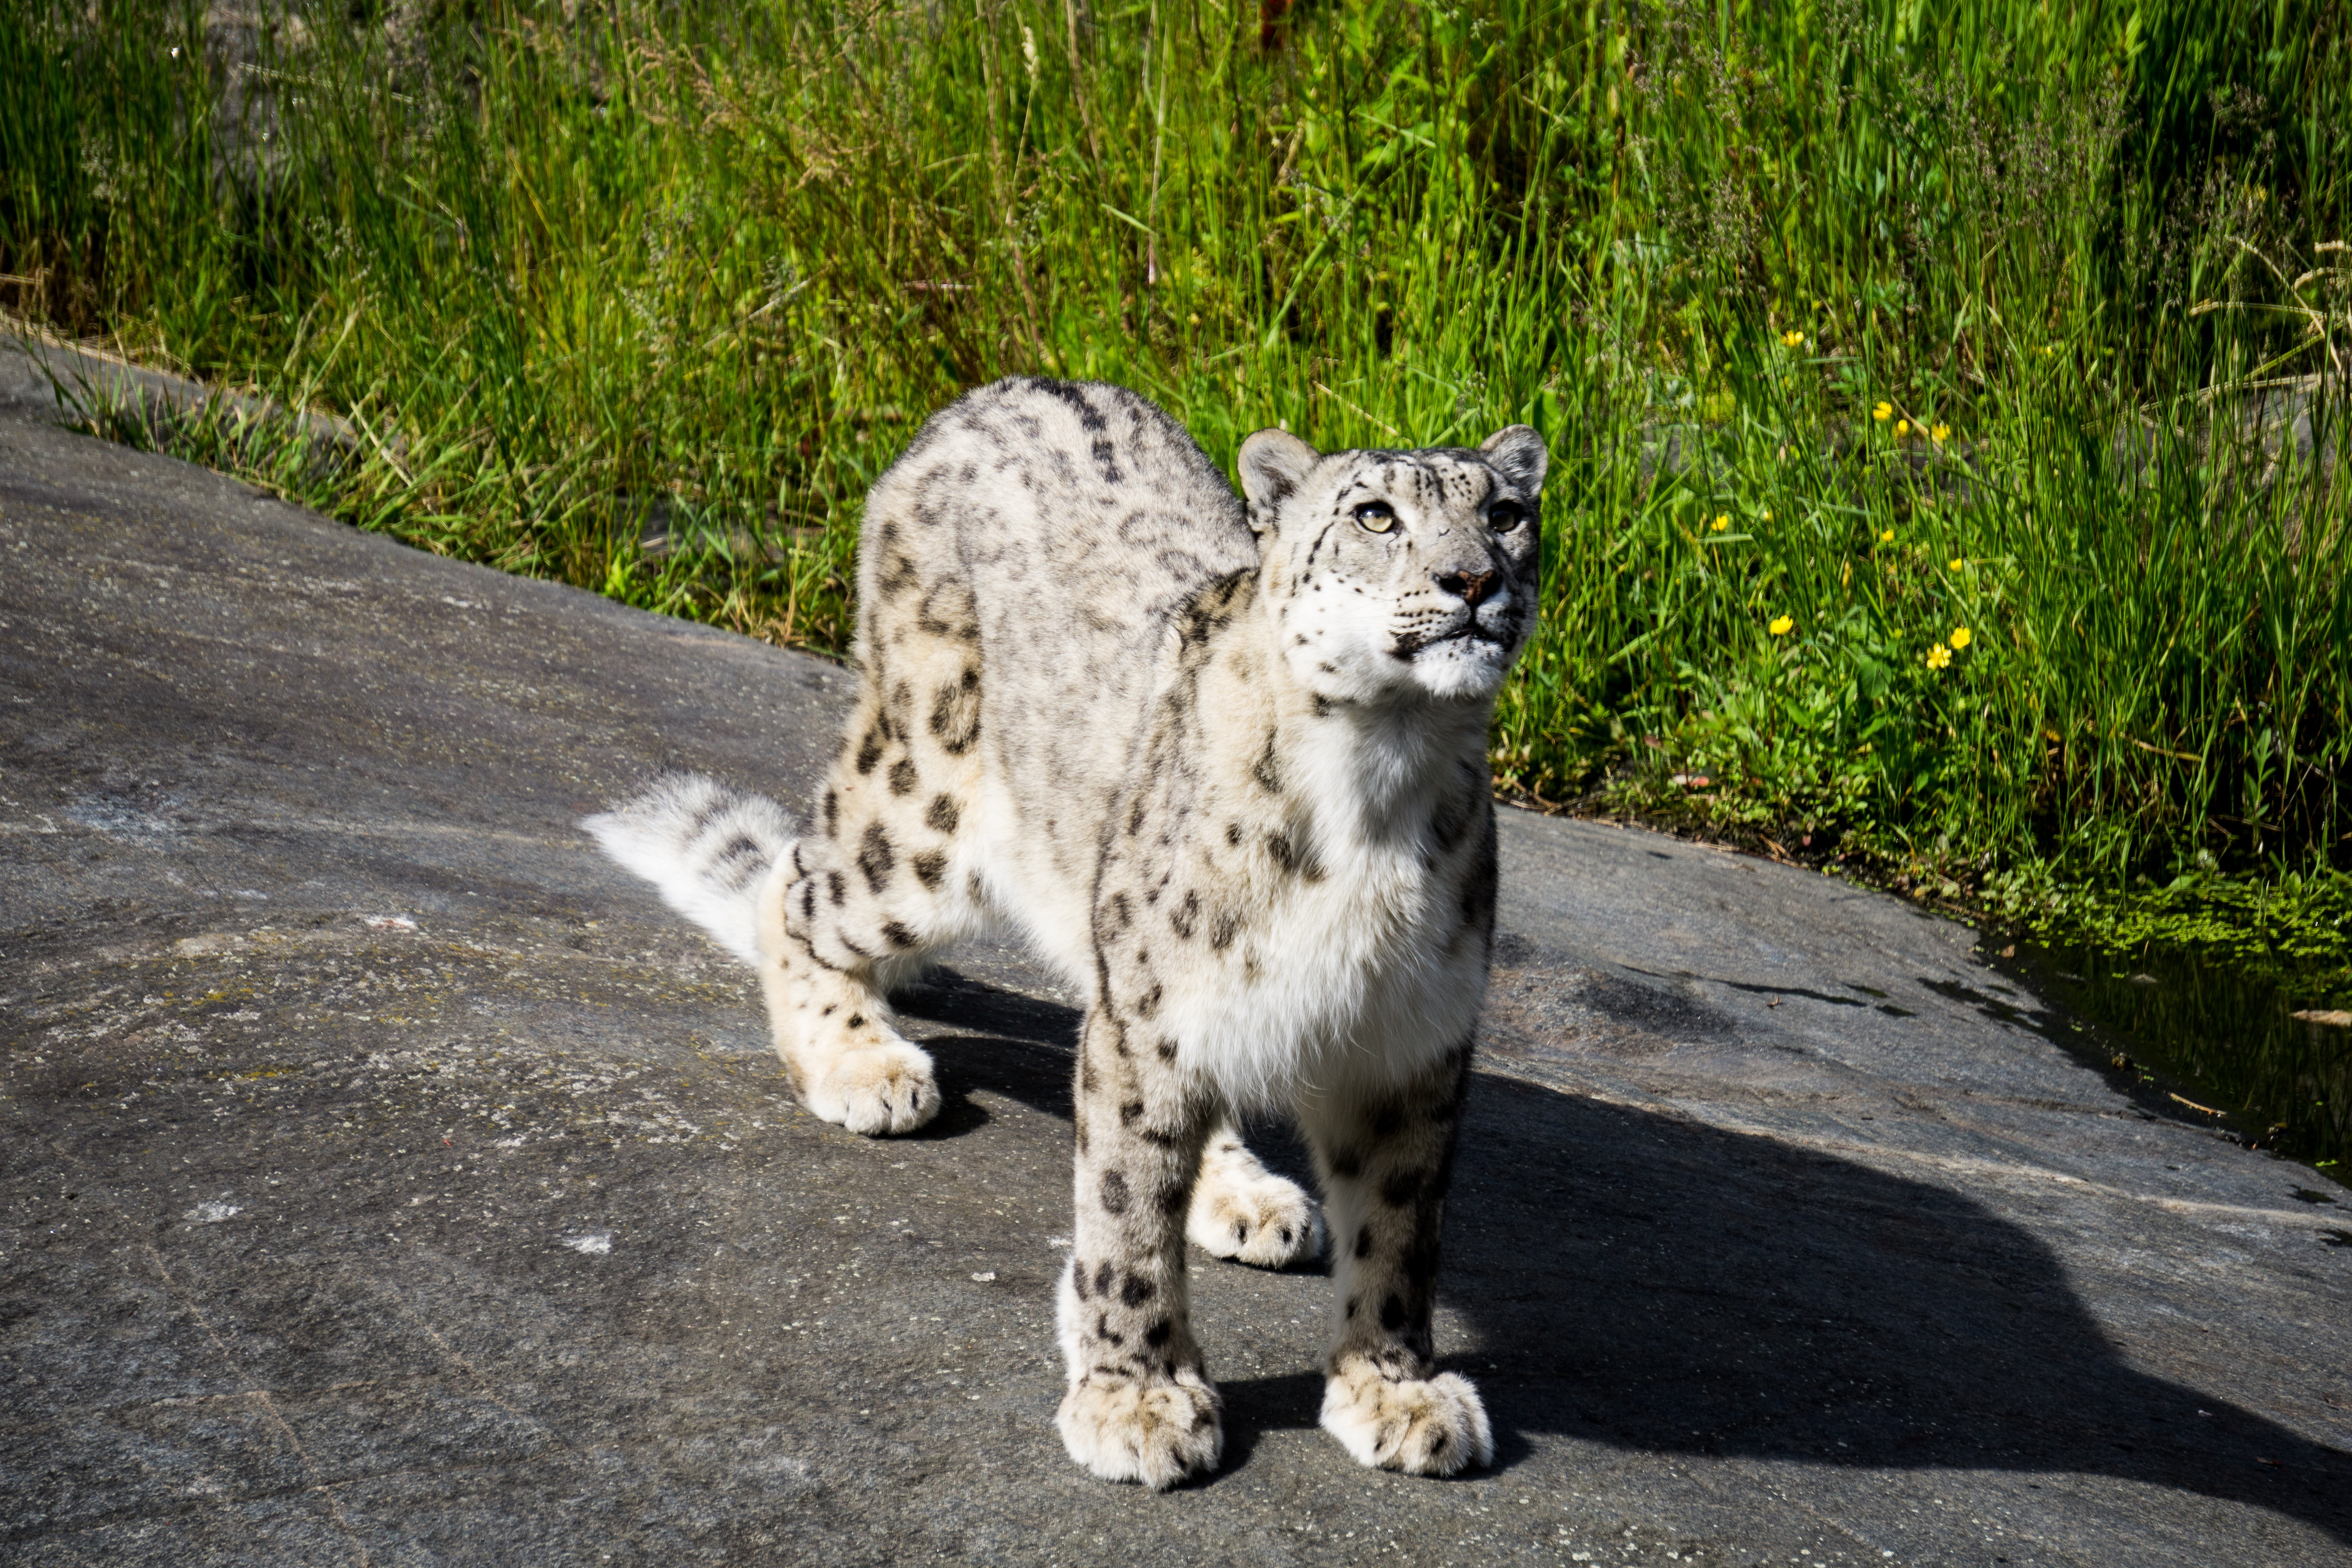 What it's like to trek with snow leopards in Ladakh